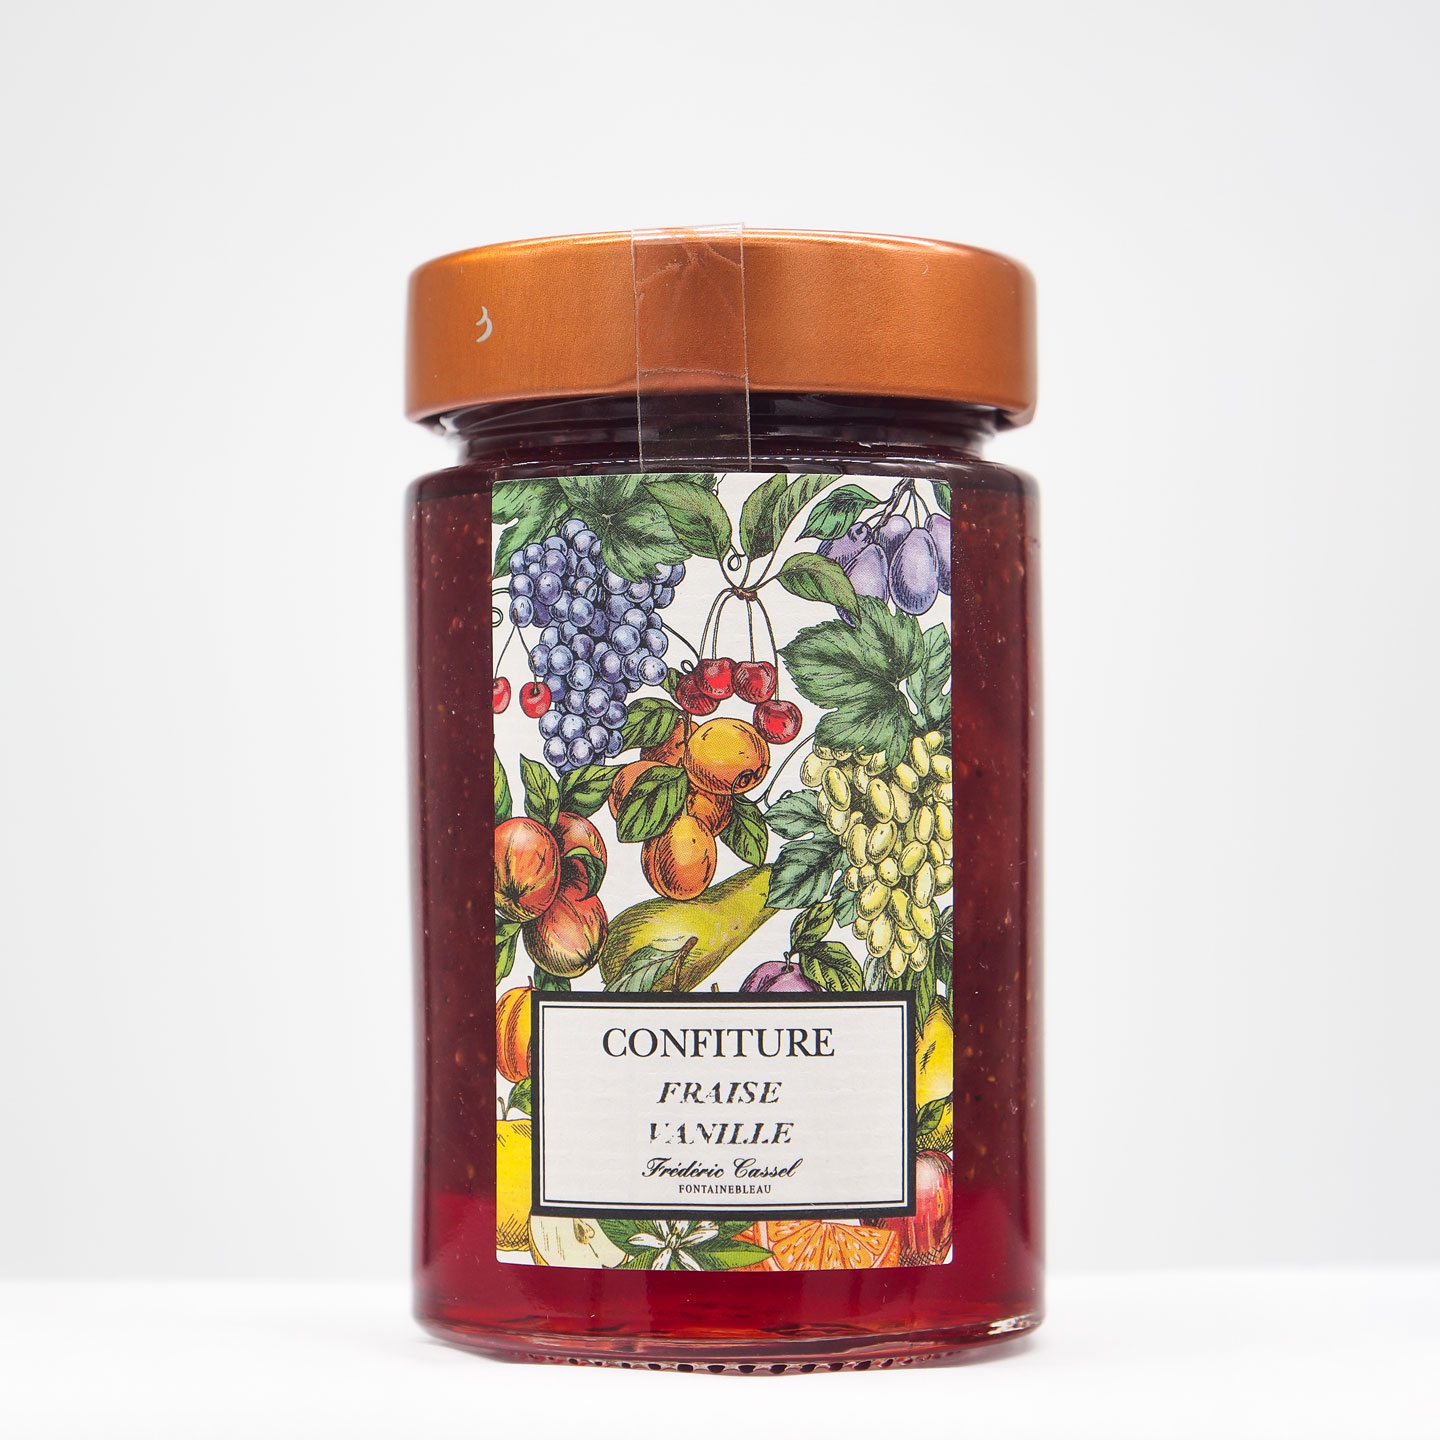 Confiture Fraise Vanille 'Extra' 270g